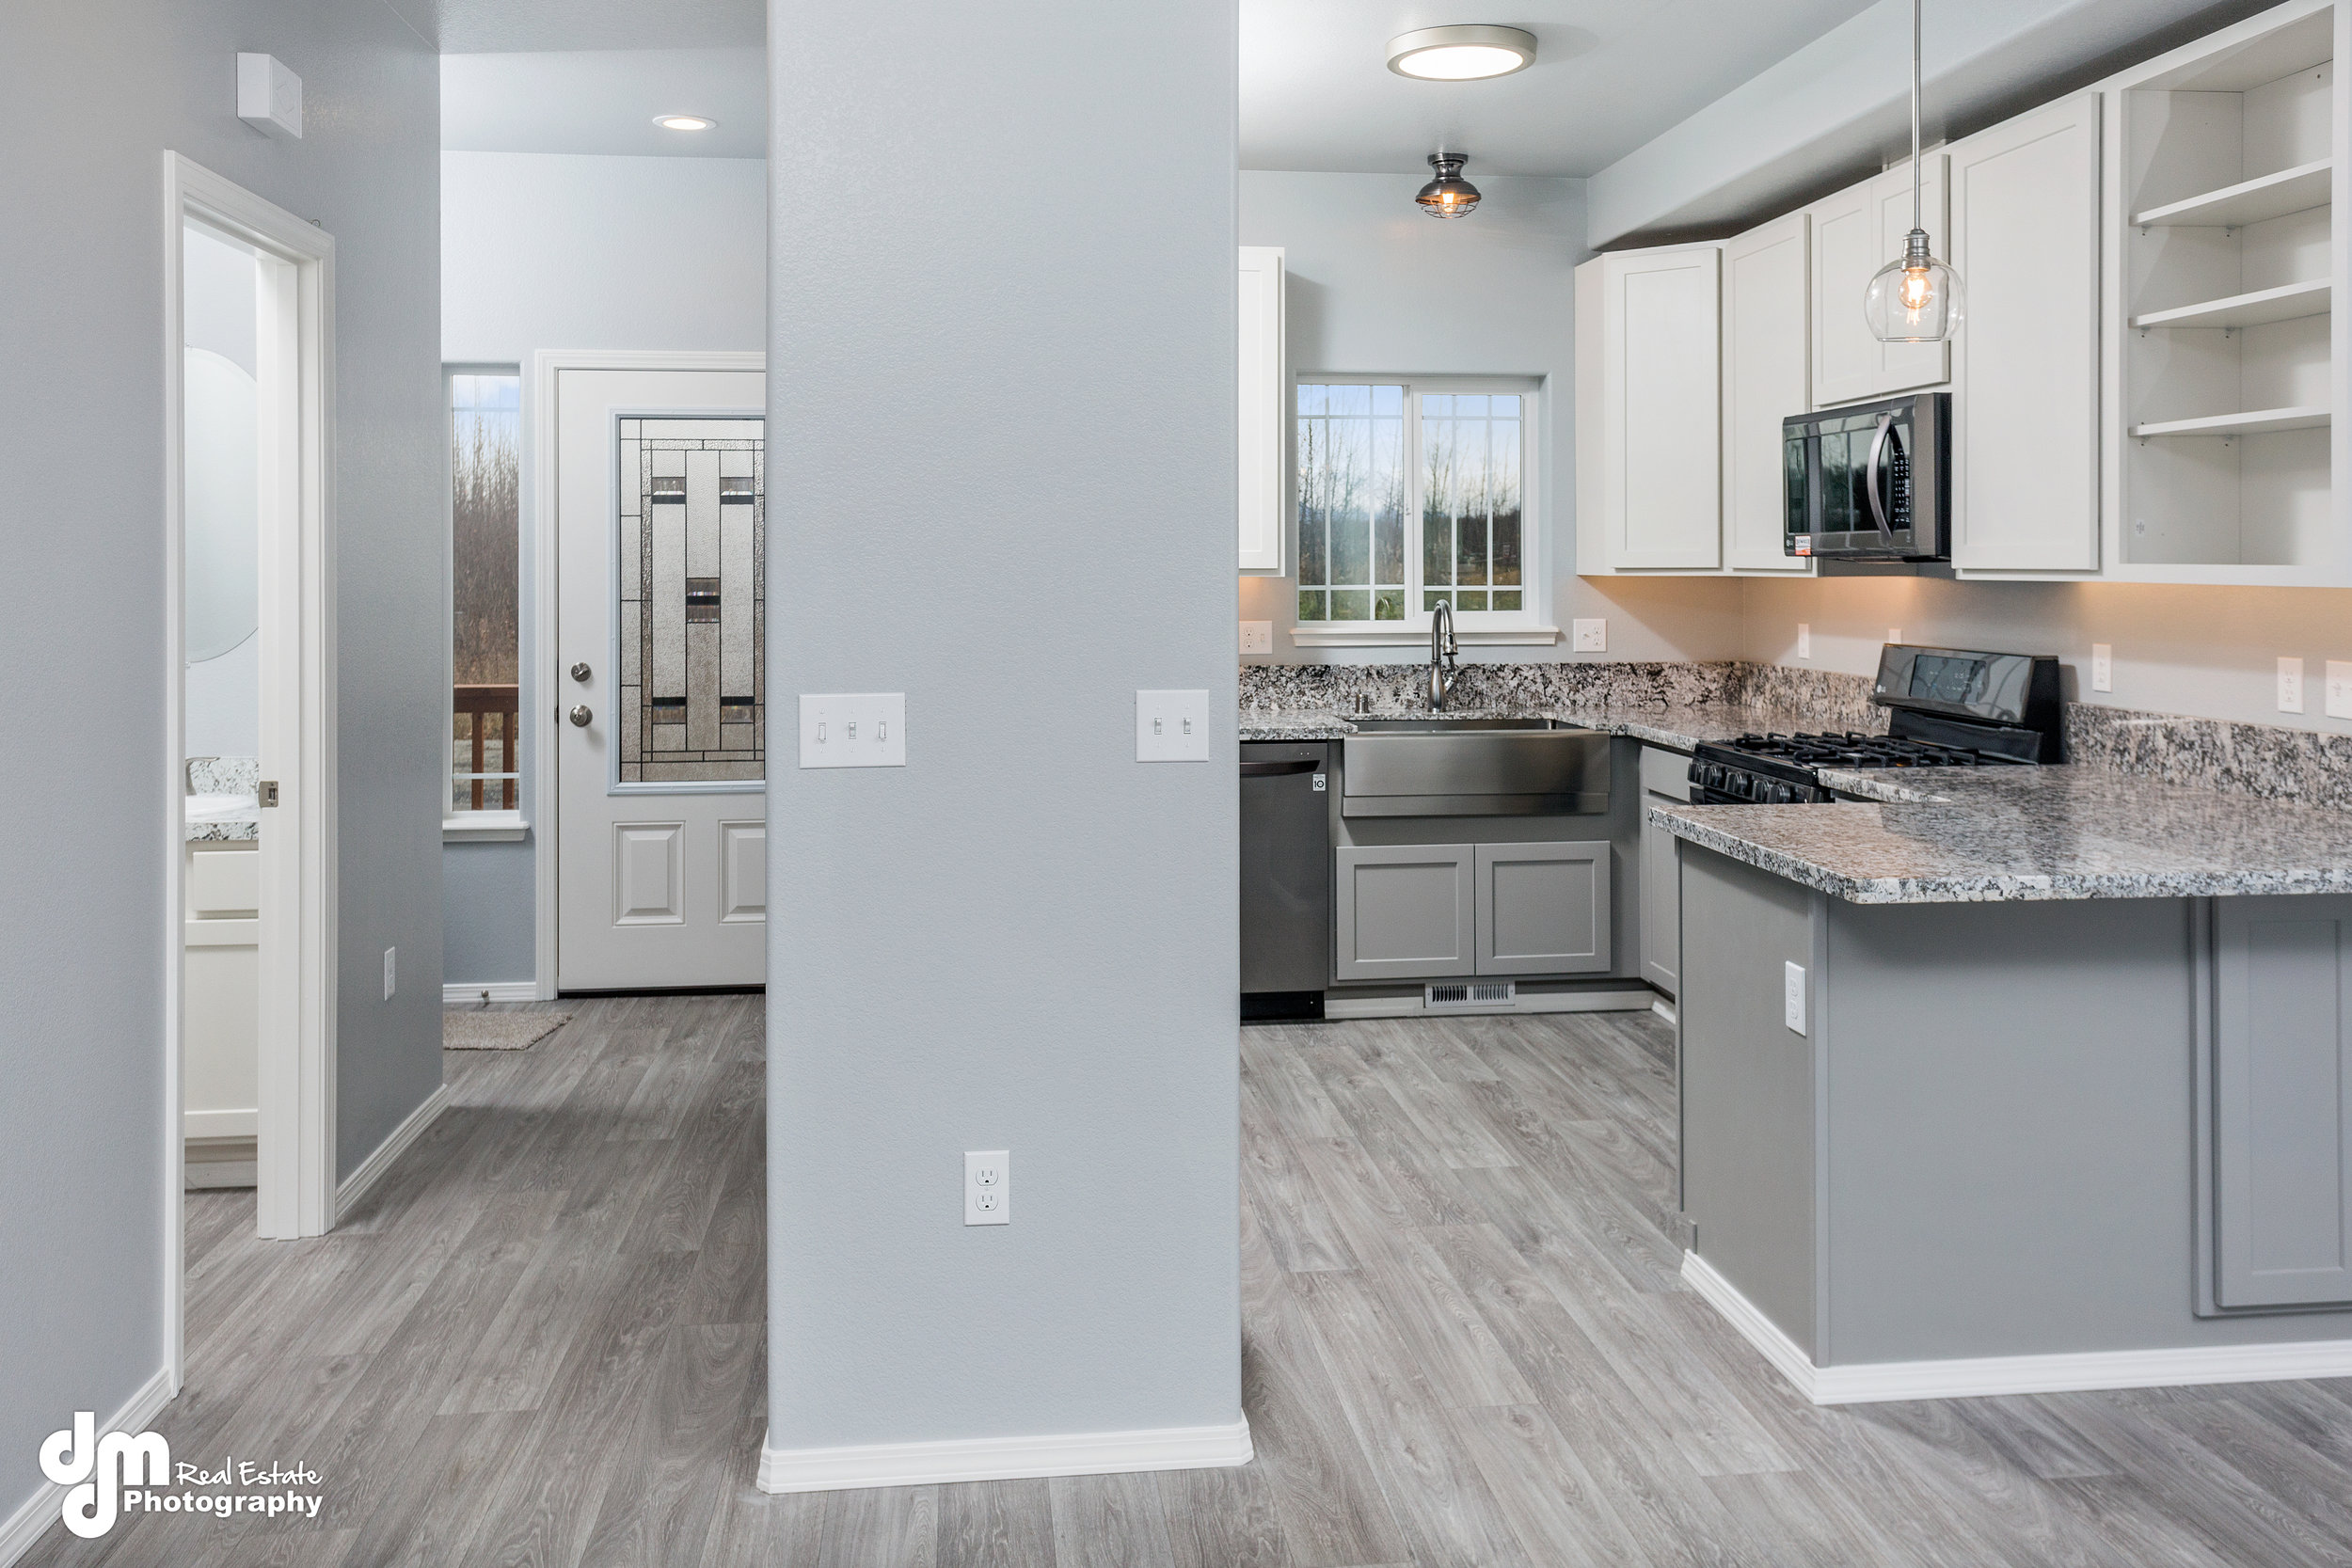 Kitchen_DMD_7893-FULL.JPG